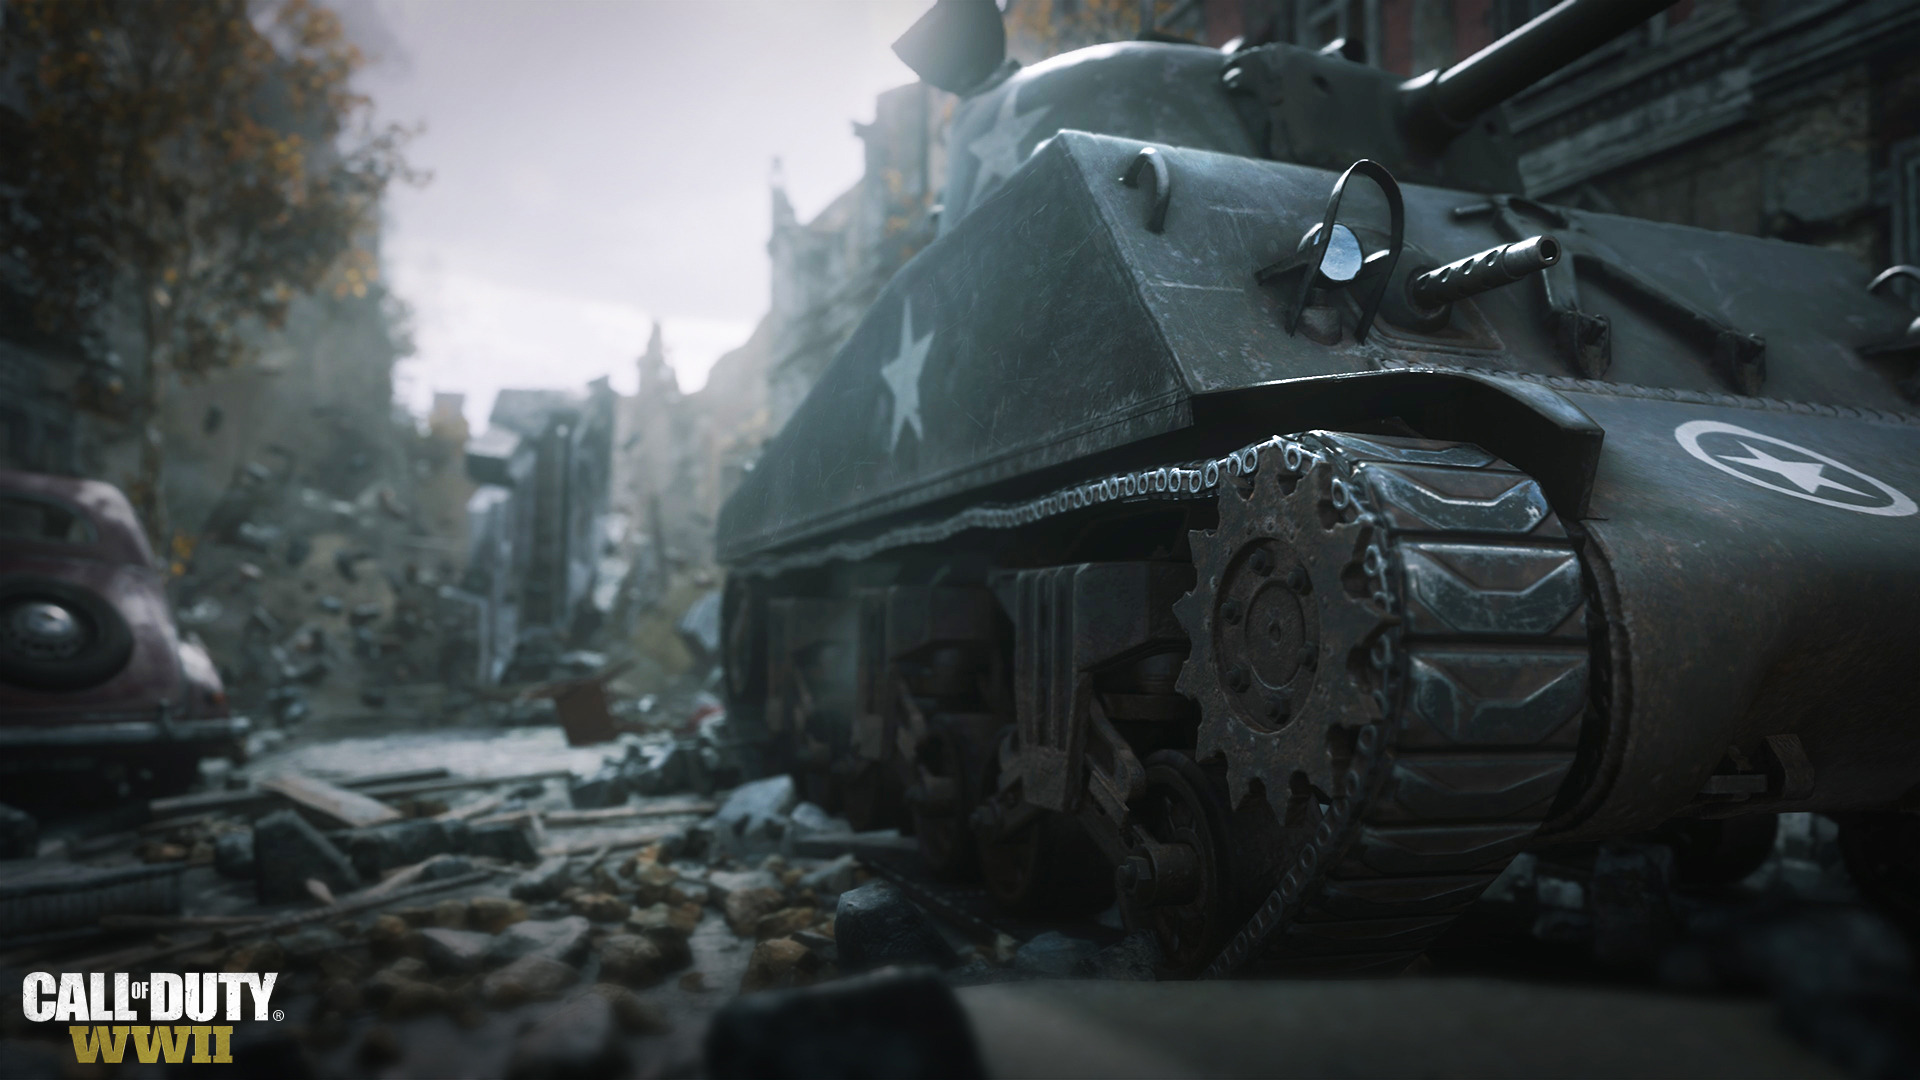 Call Of Duty Ww2 Tank Hd Games 4k Wallpapers Images